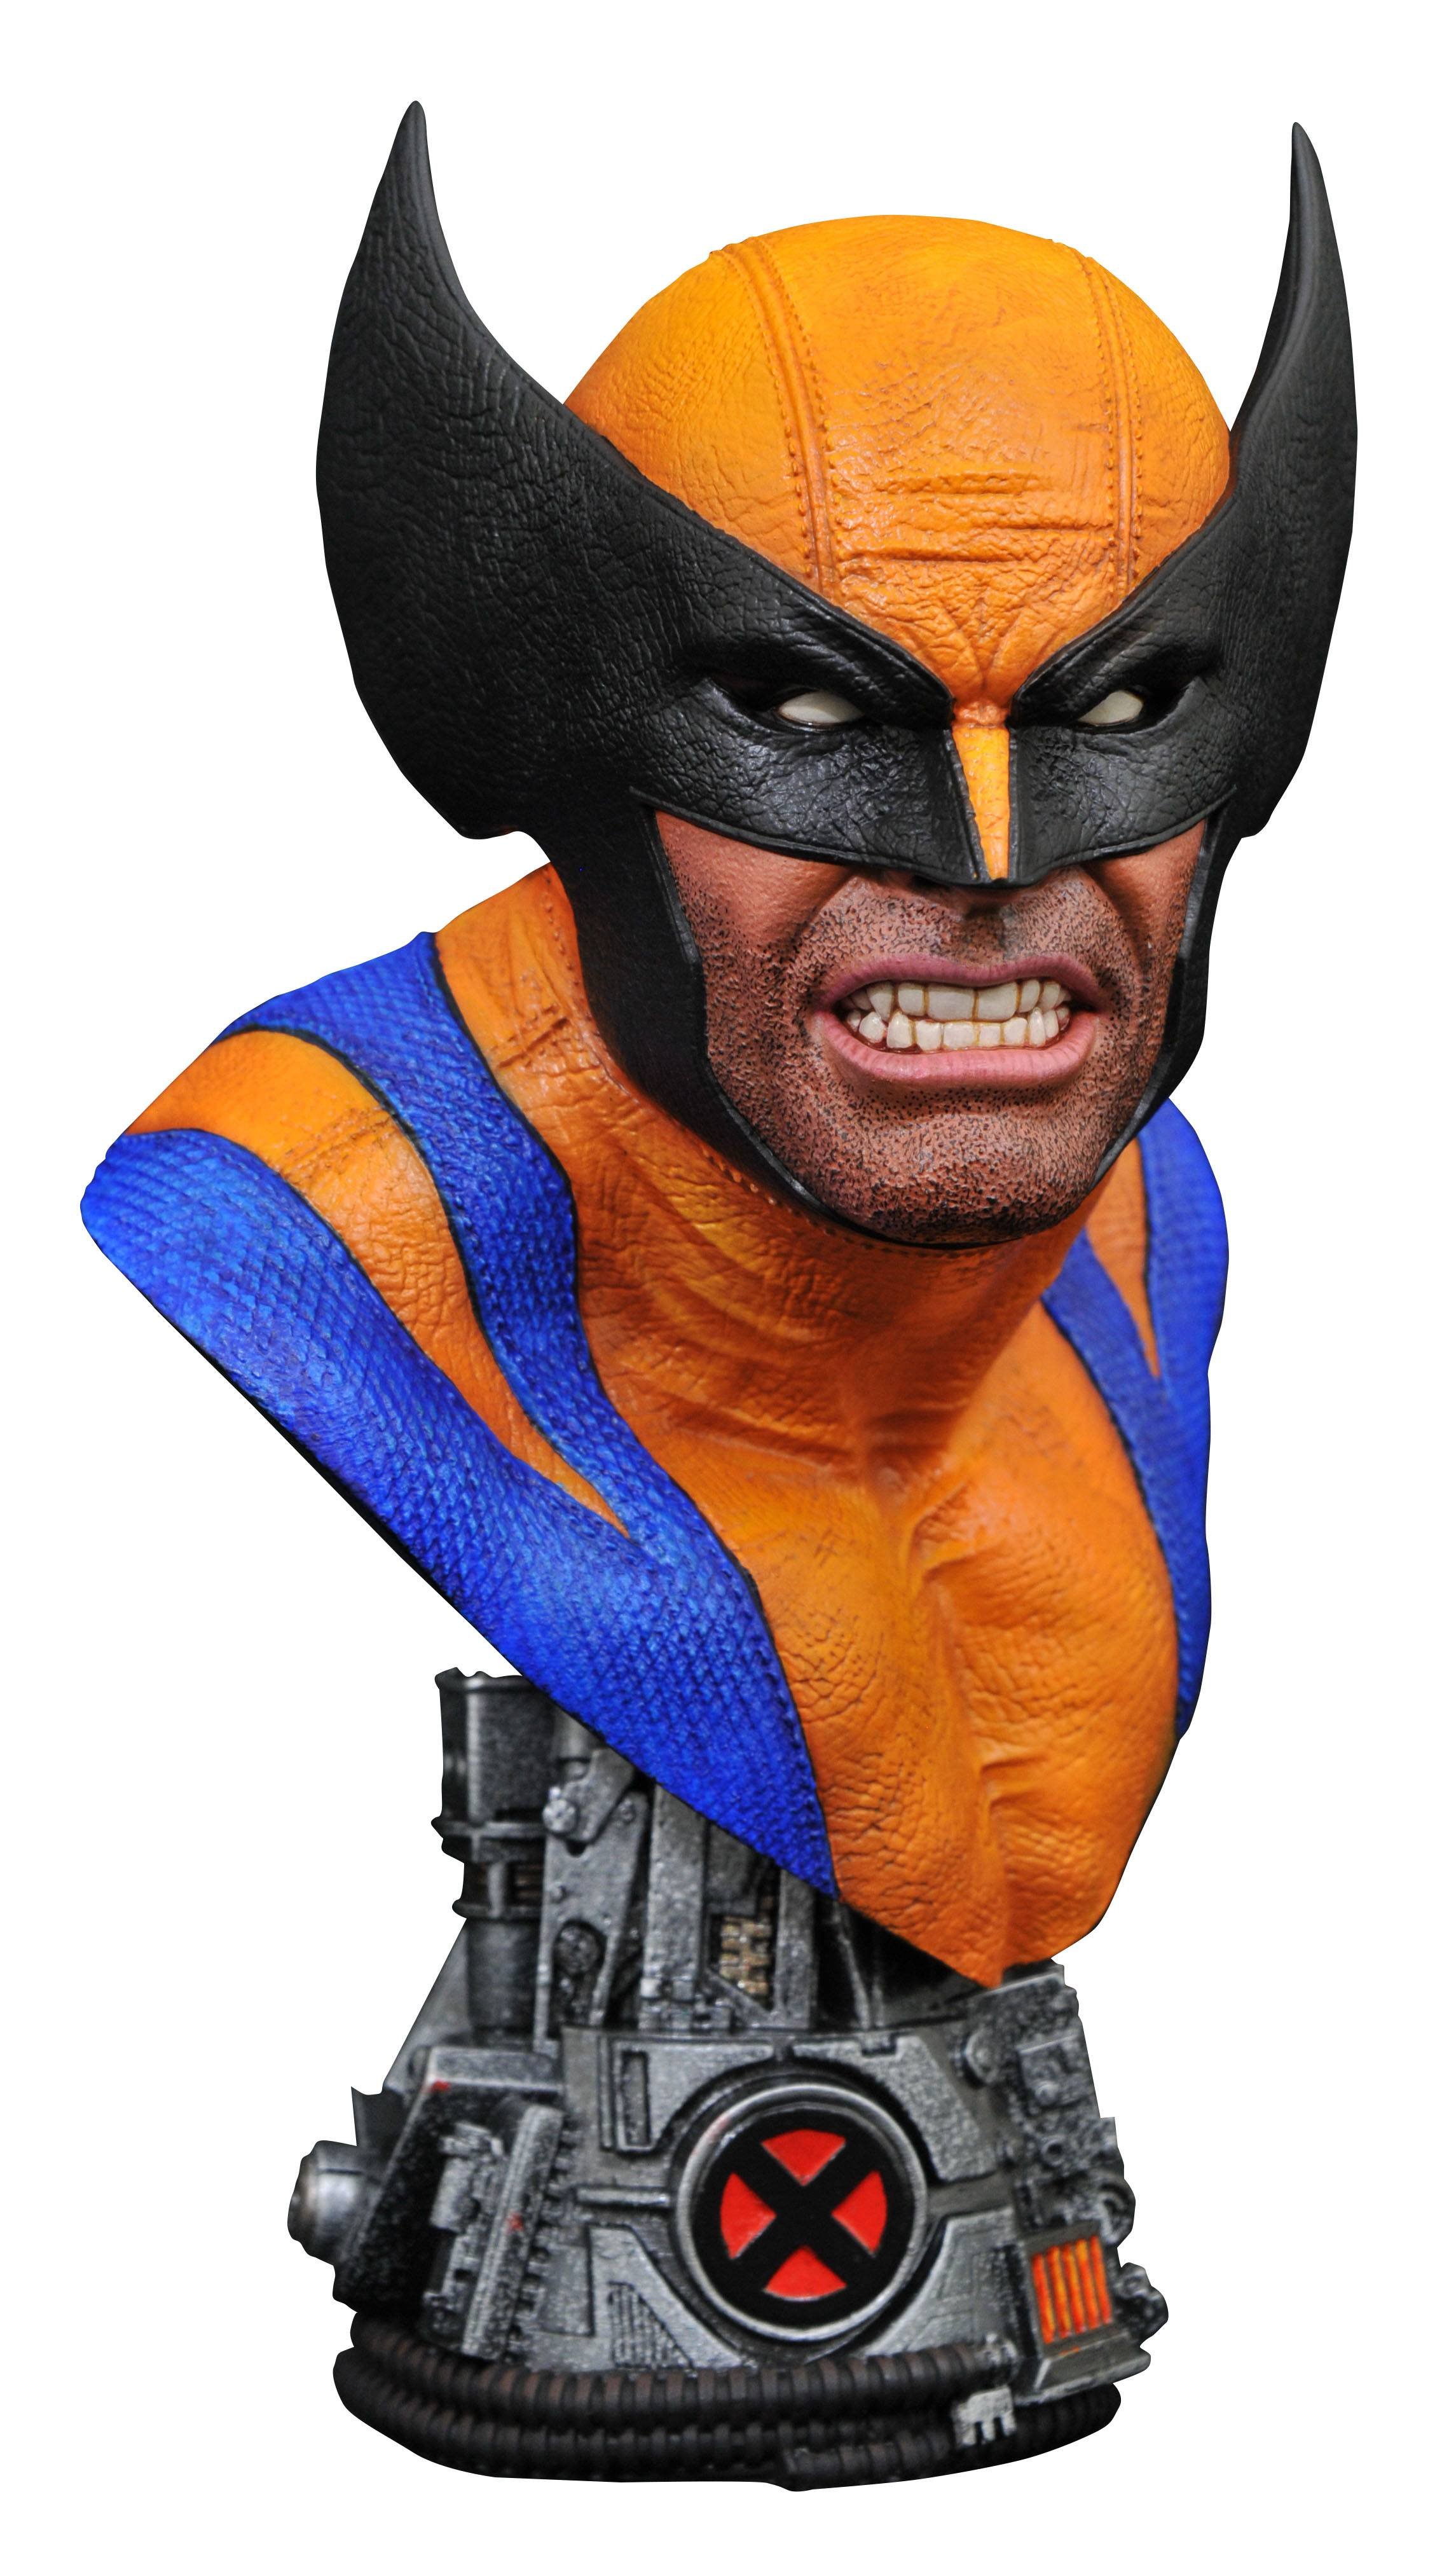 MARVEL LEGENDS IN 3D WOLVERINE 1/2 SCALE BUST